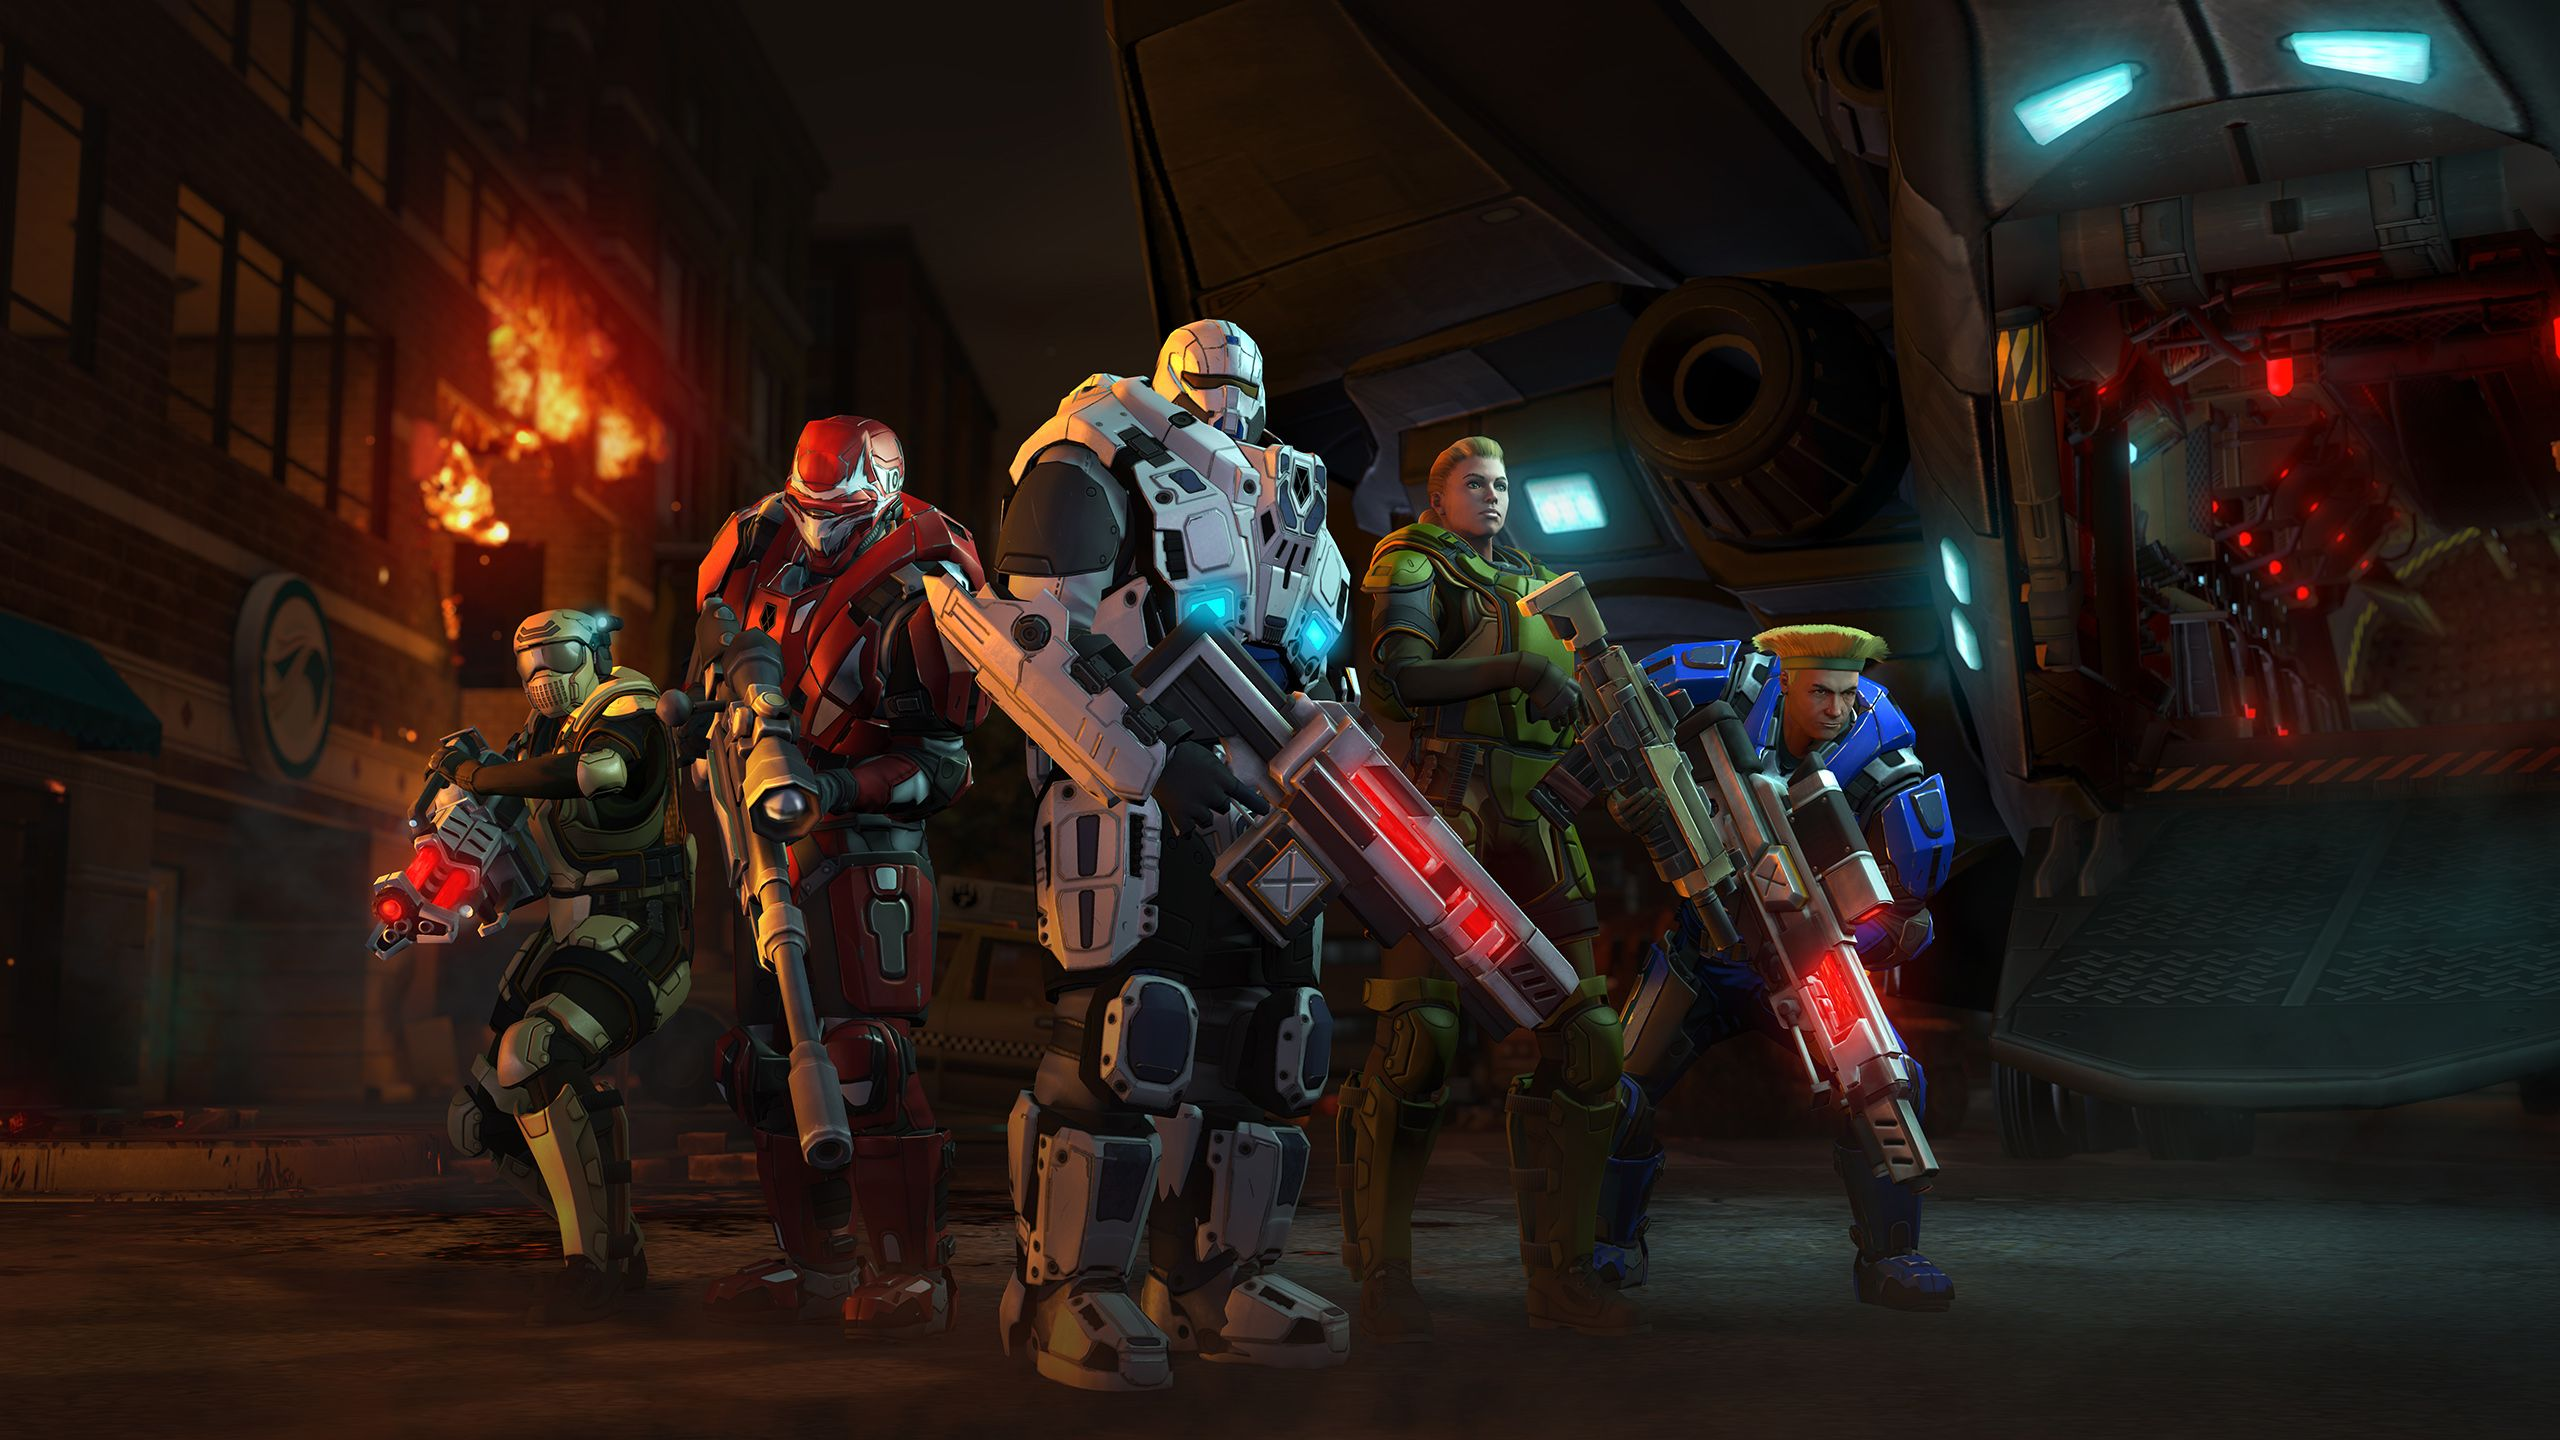 Xcom S Alien Hunters Enemy Live Wallpapers Unknown Soldier